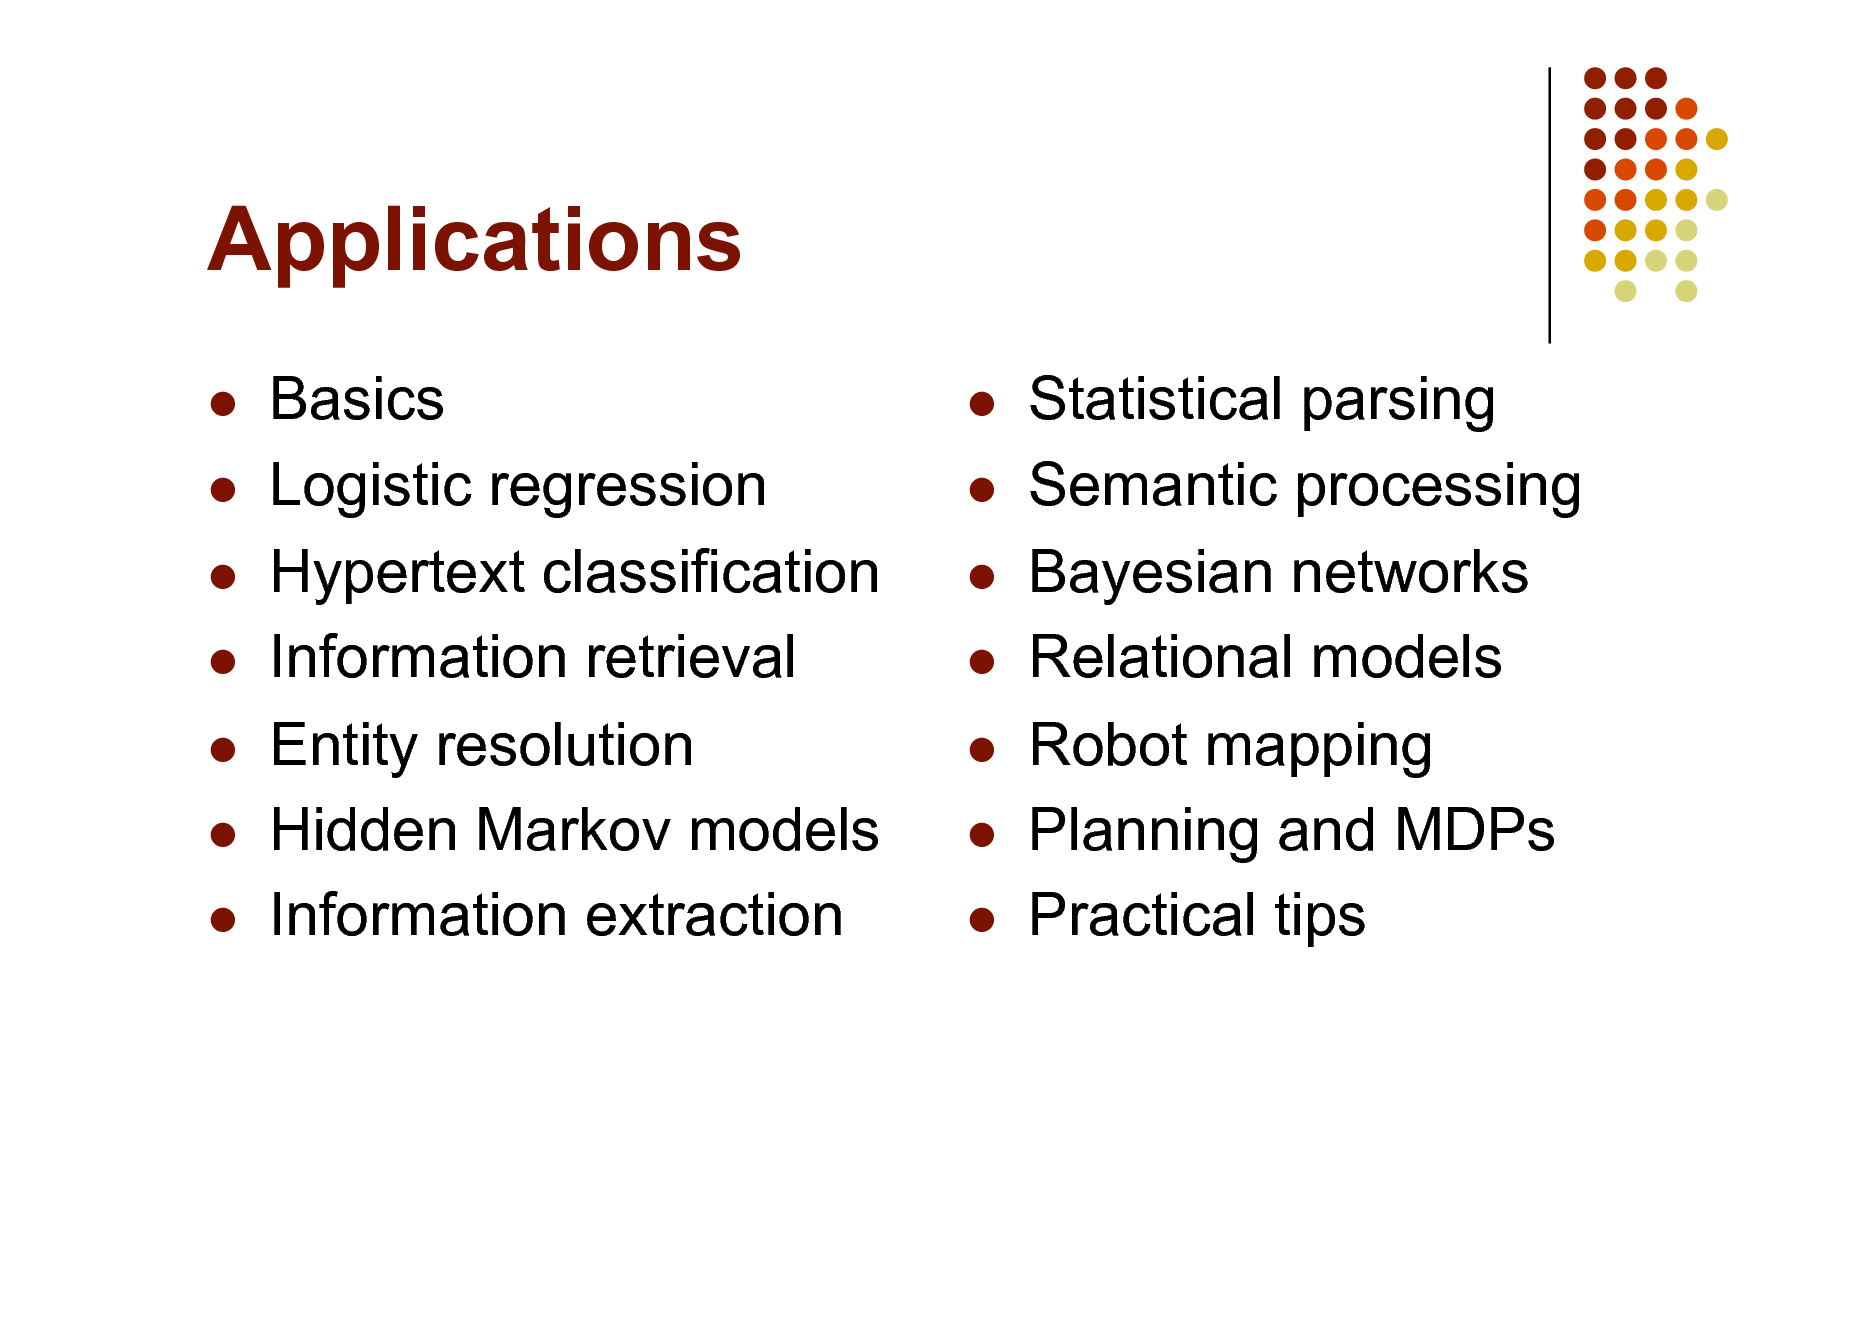 Slide: Applications         Basics Logistic regression Hypertext classification Information retrieval Entity resolution Hidden Markov models Information extraction          Statistical parsing Semantic processing Bayesian networks Relational models Robot mapping Planning and MDPs Practical tips